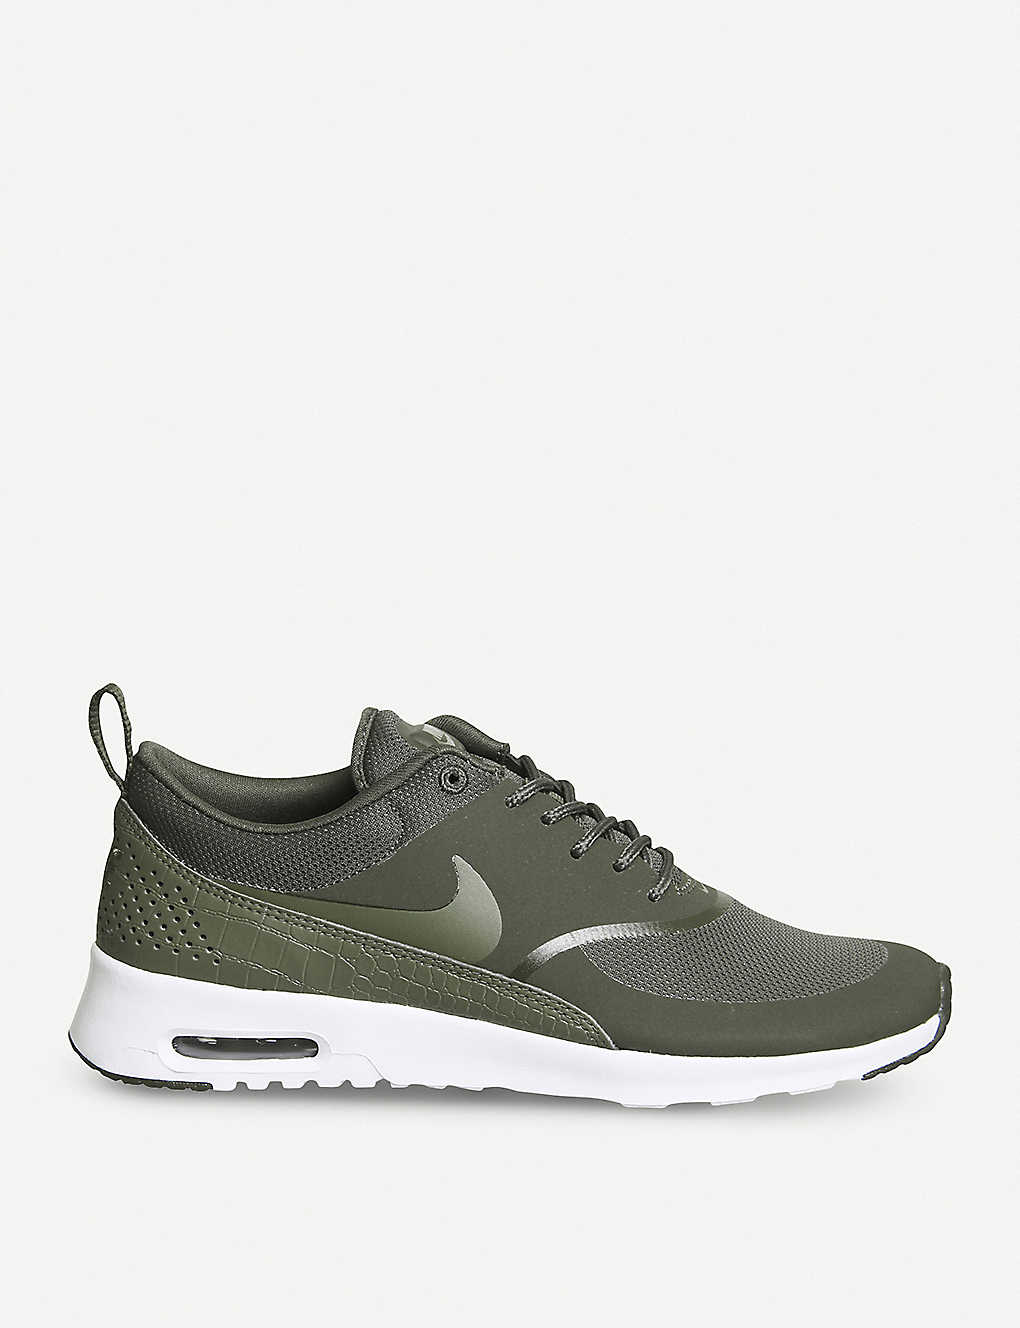 9e9d92e164 NIKE - Air Max Thea low-top mesh trainers | Selfridges.com